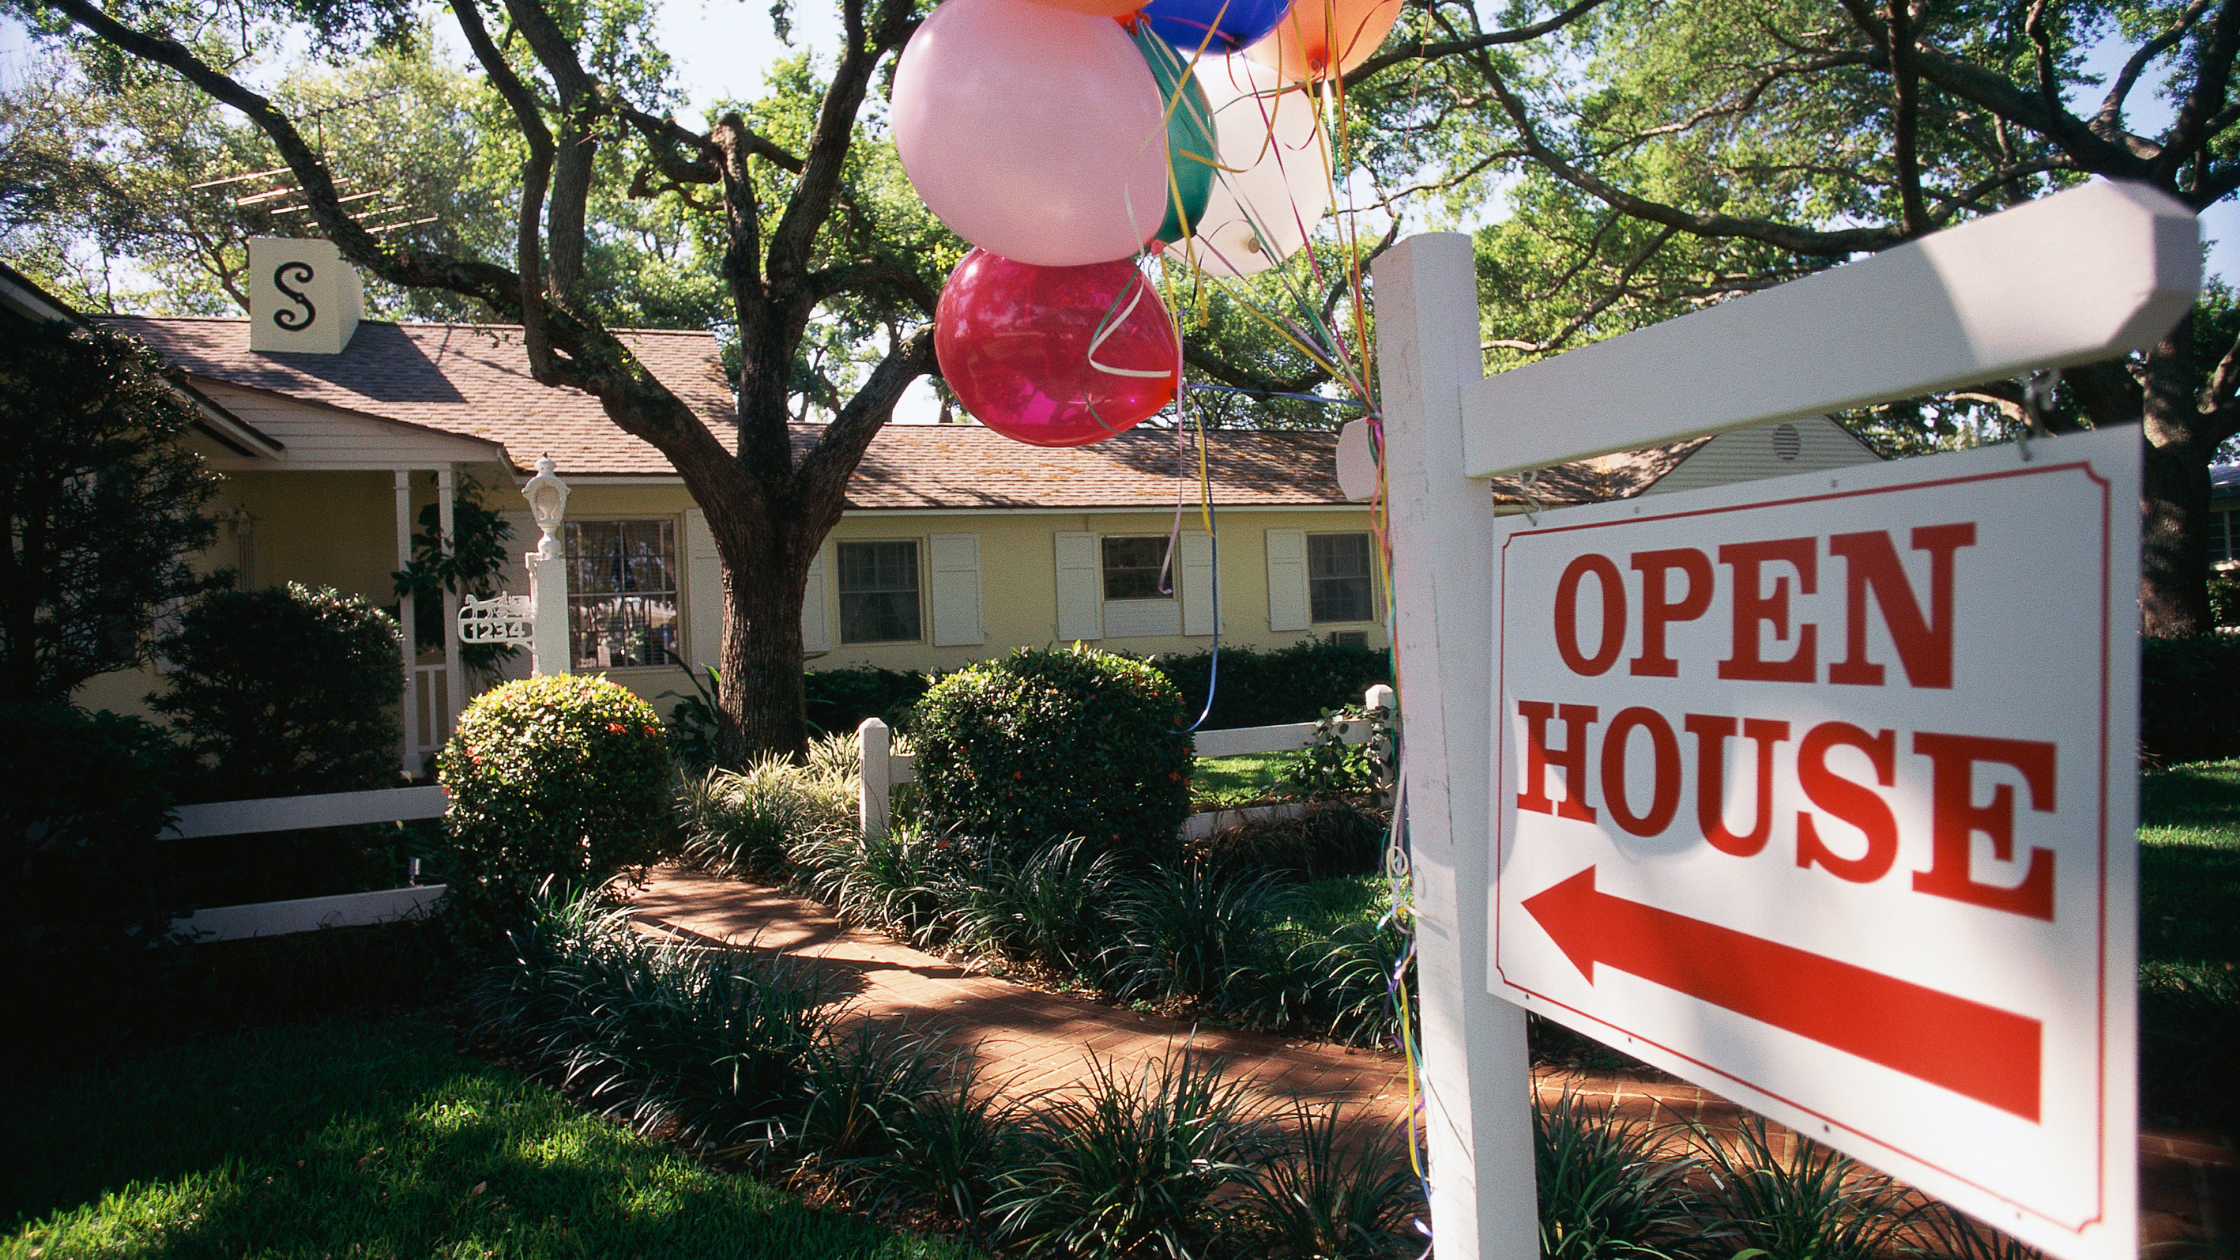 real estate sign advertising an open house with pink and red balloons